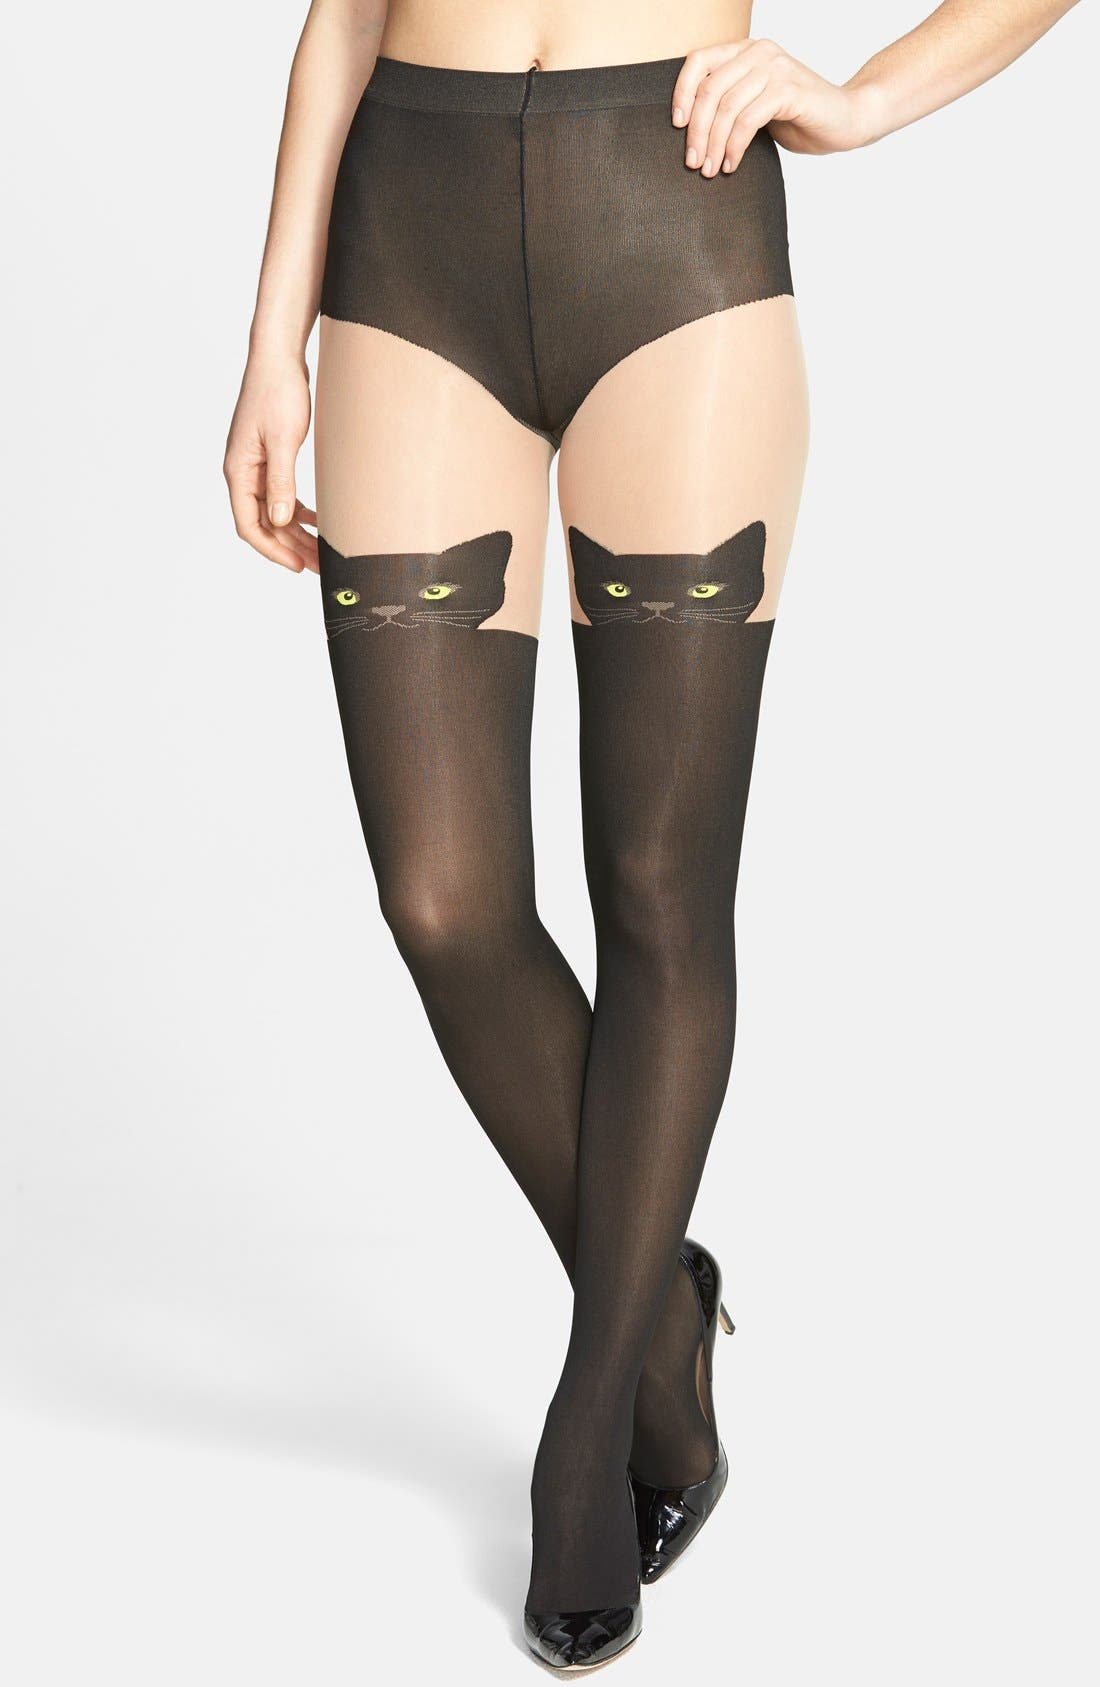 Alternate Image 1 Selected - Pretty Polly 'Cat' Tights